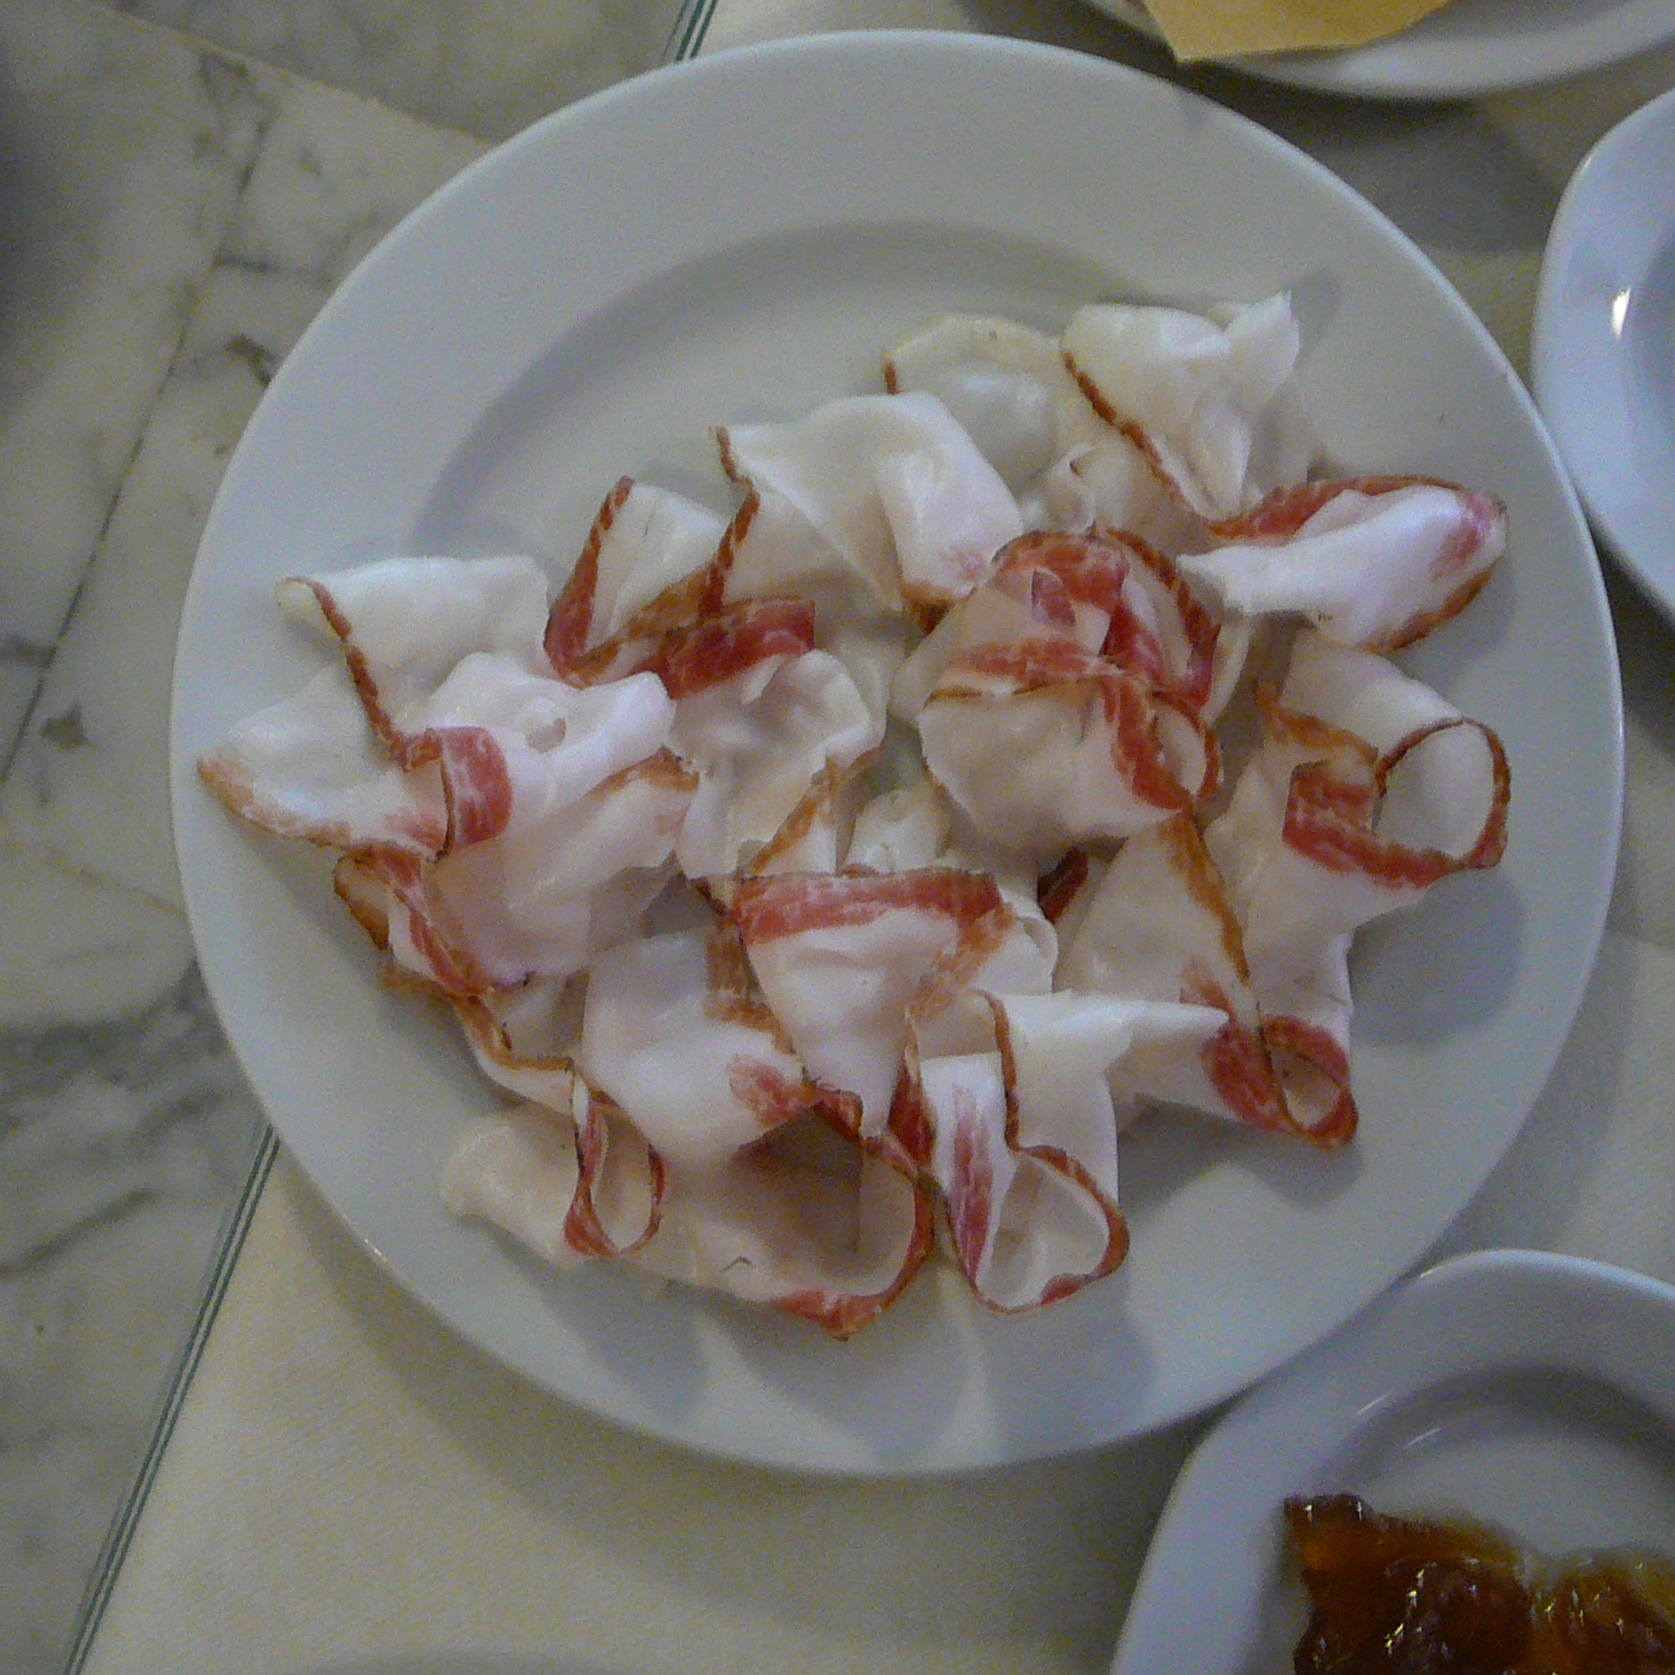 Lardo di Colonnata or cured lard